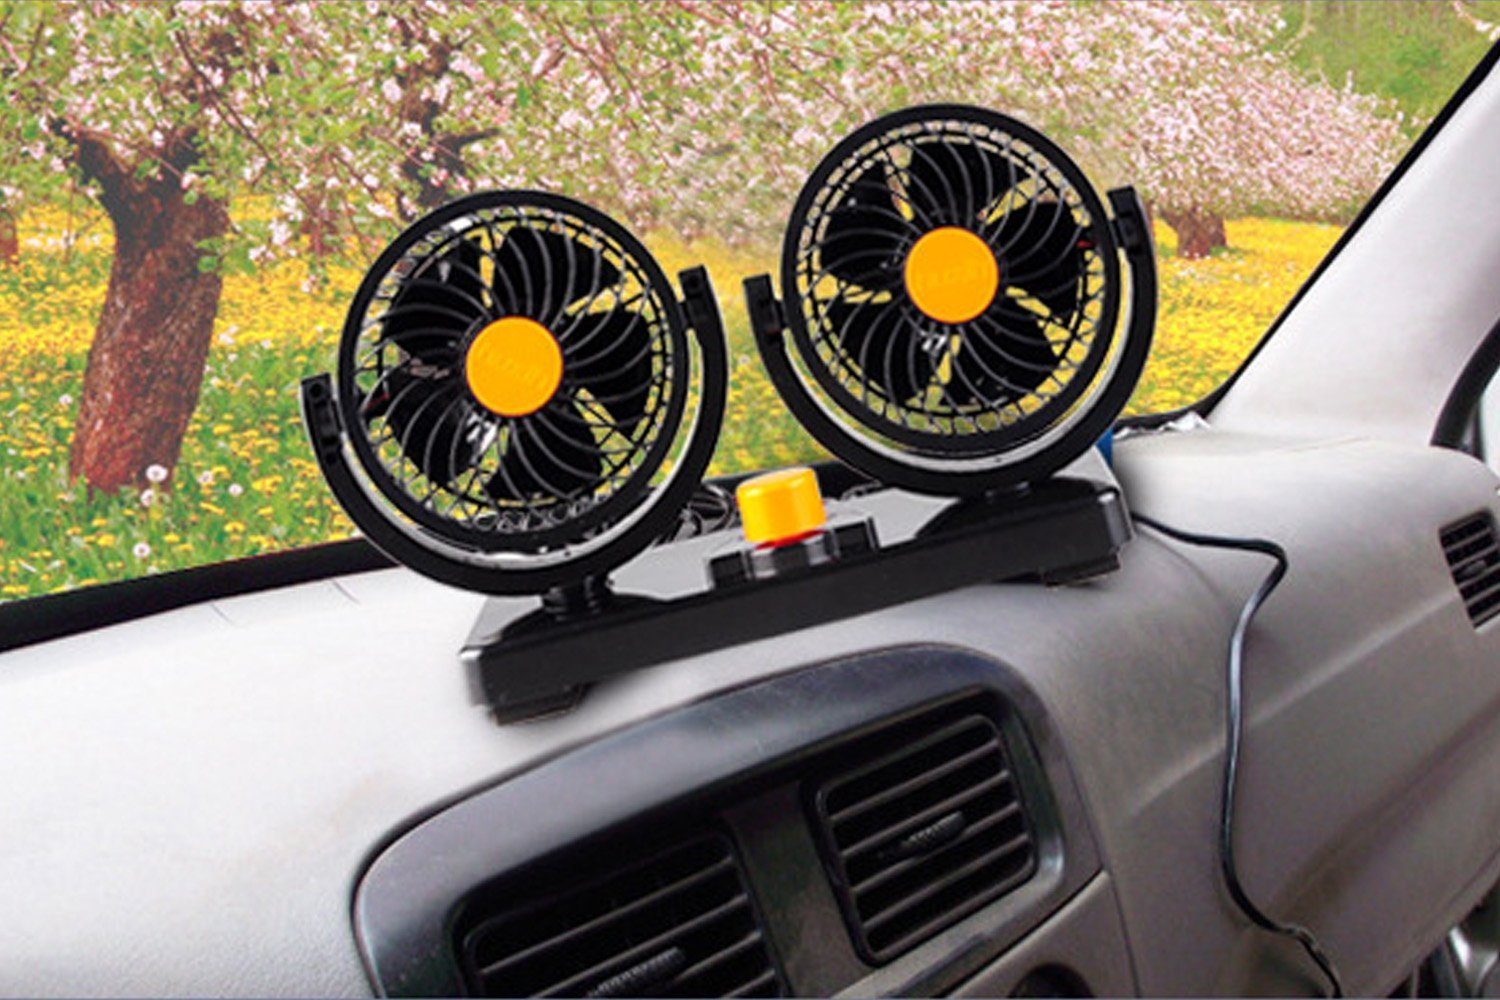 Willcomes 24 Dual Head Car Auto Cooling Air Fan 360 Degree Rotation Powerful Quiet 2 Speed Adjustable Strong Wind Auto Cooling Air Fan with Kids Safe Design by Willcomes (Image #4)